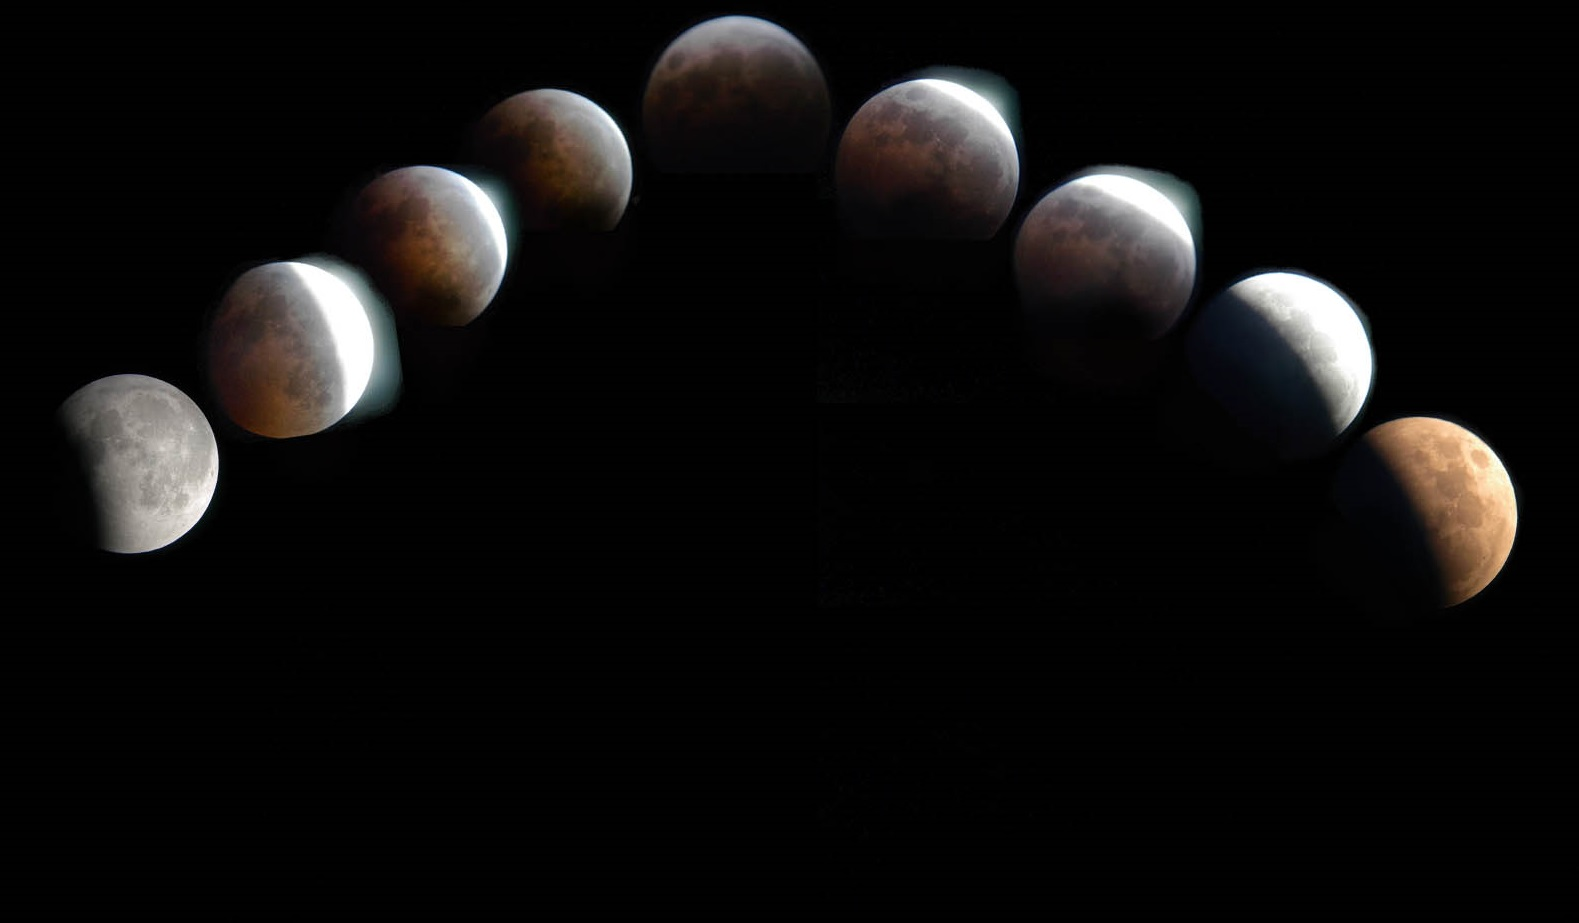 blood moon meaning science - photo #8